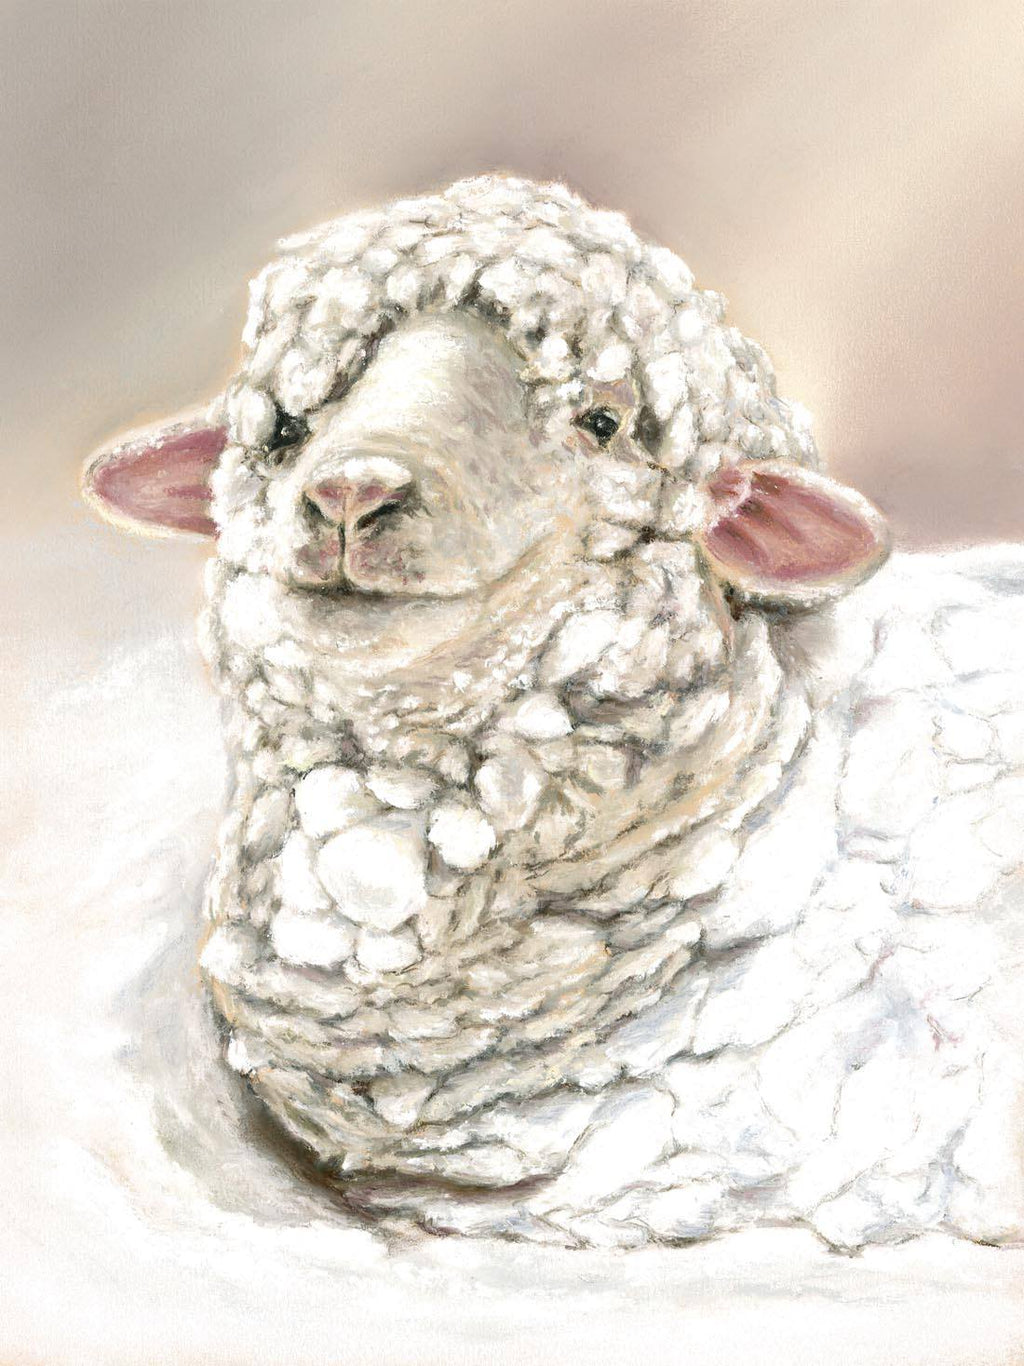 Just Chilling - Fine art giclee print - Chill, Christmas, Cold, Cute & Funny, Seasonal, Sheep, Snow, White, Winter